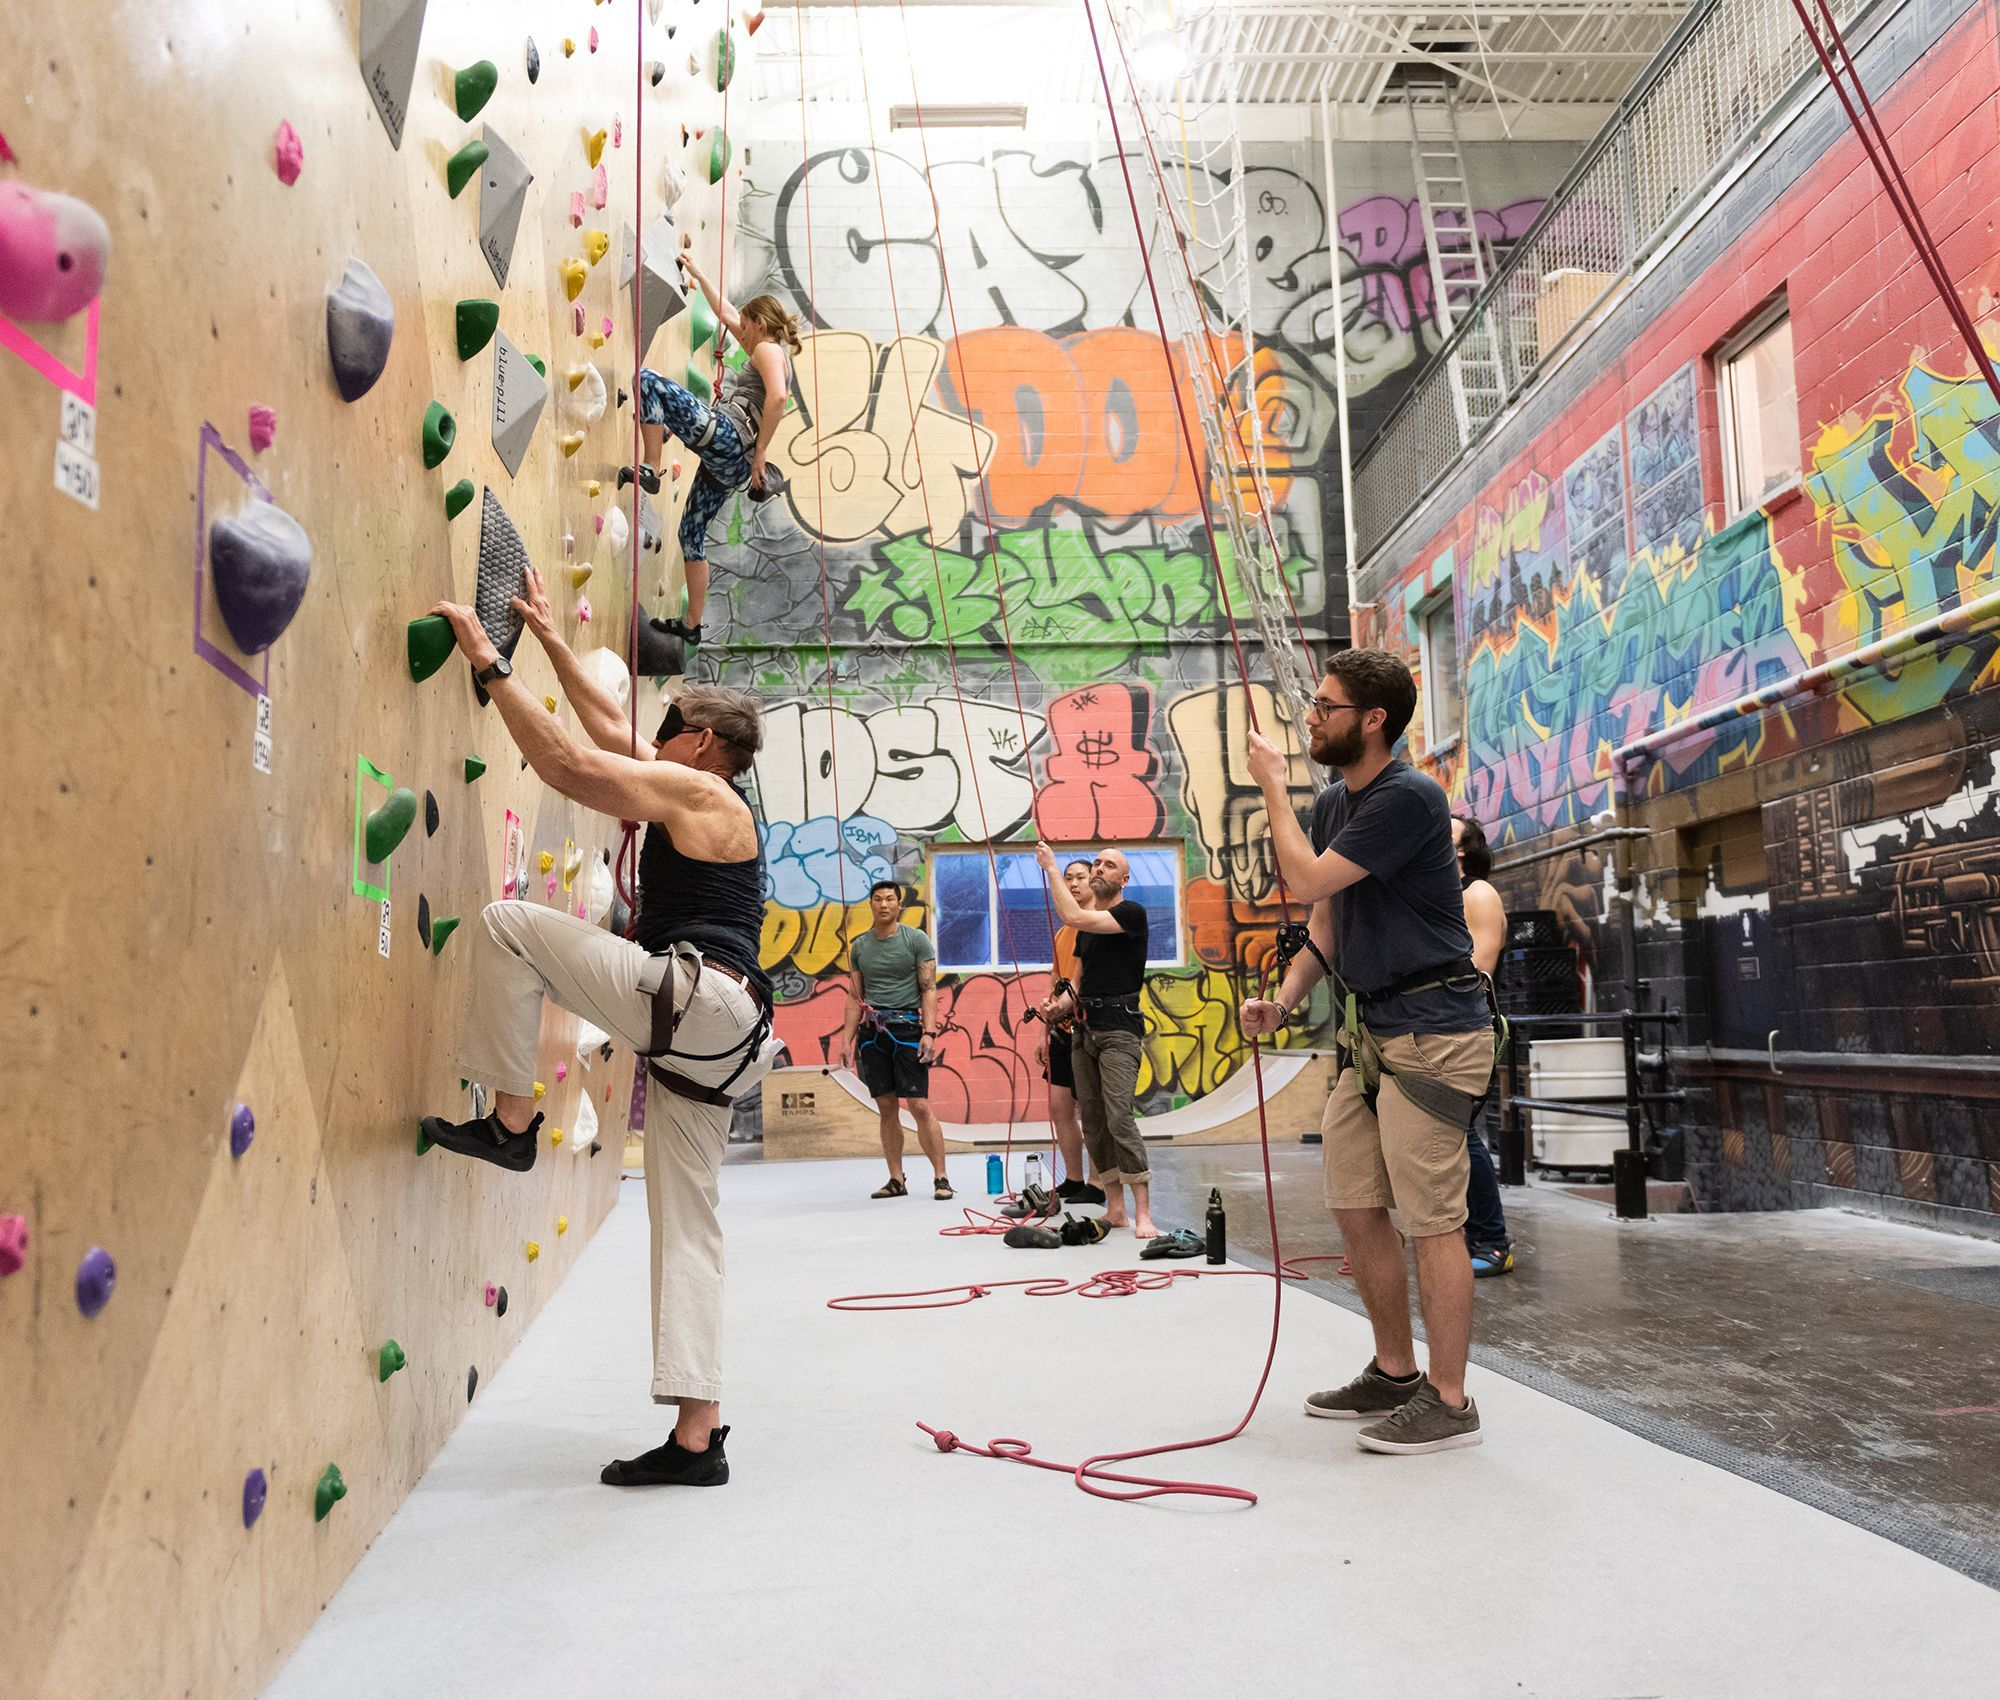 Brooklyn Boulders Somerville